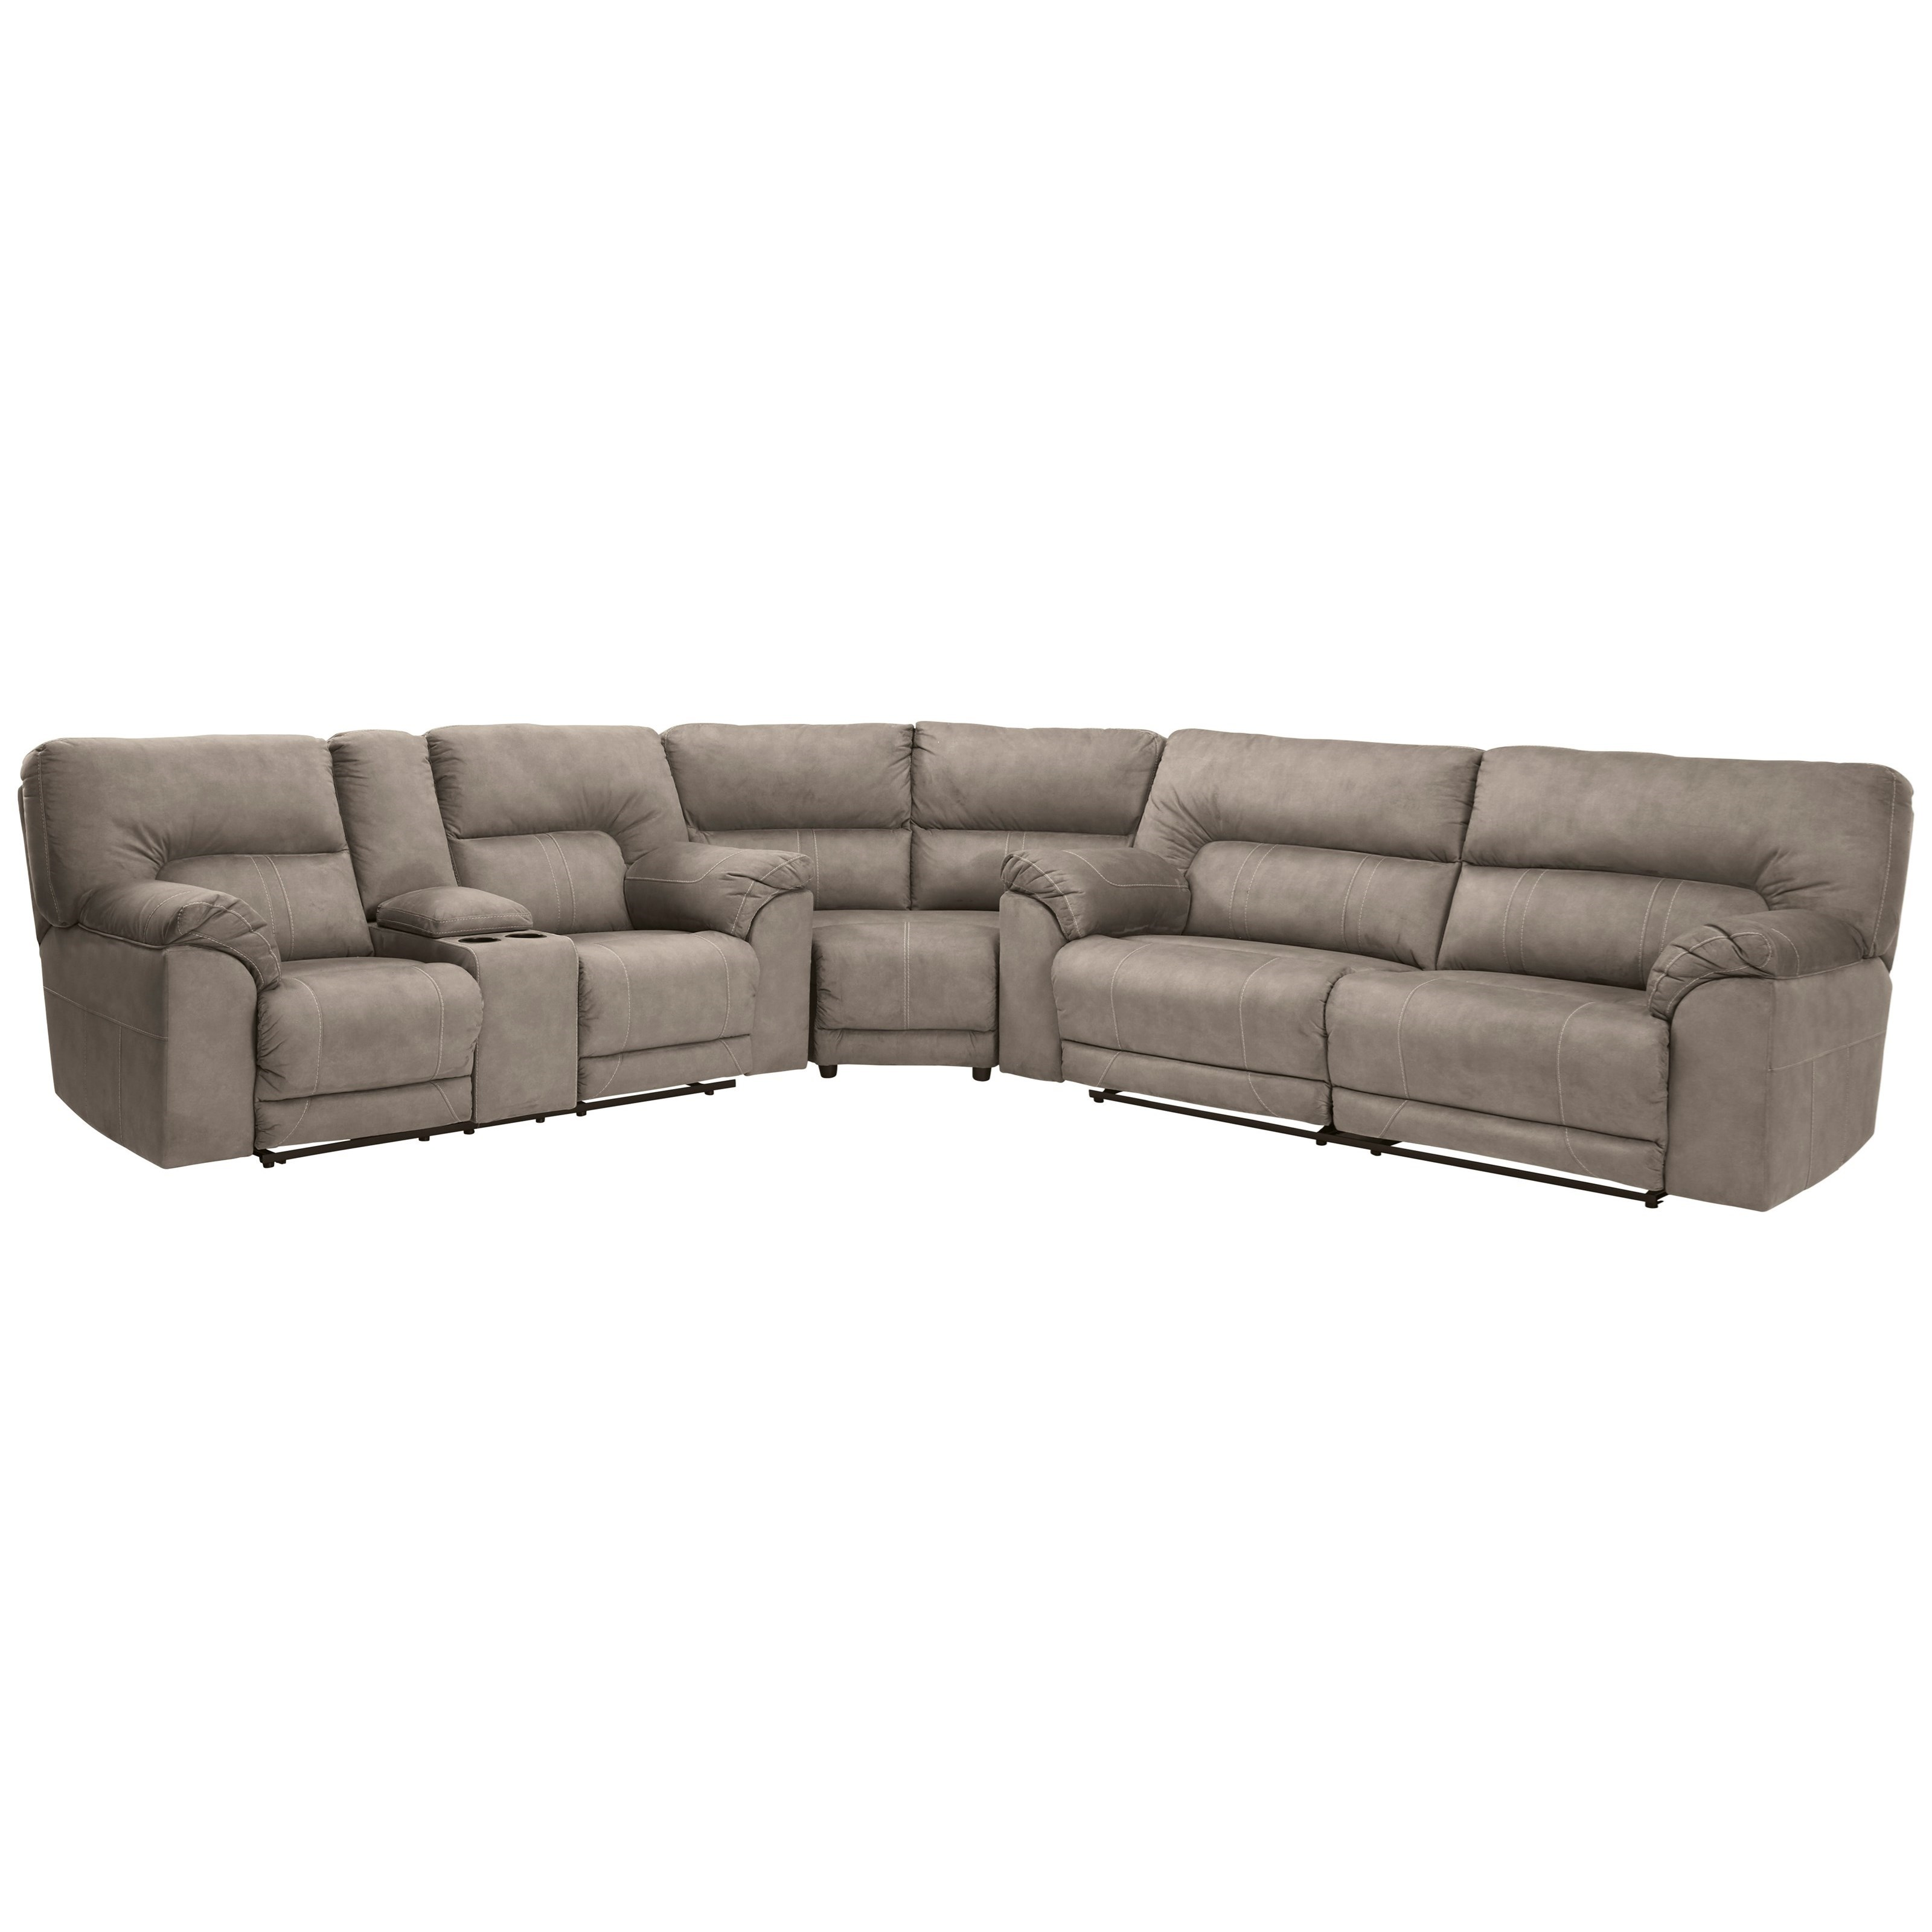 Cavalcade Reclining Sectional by Benchcraft at Standard Furniture